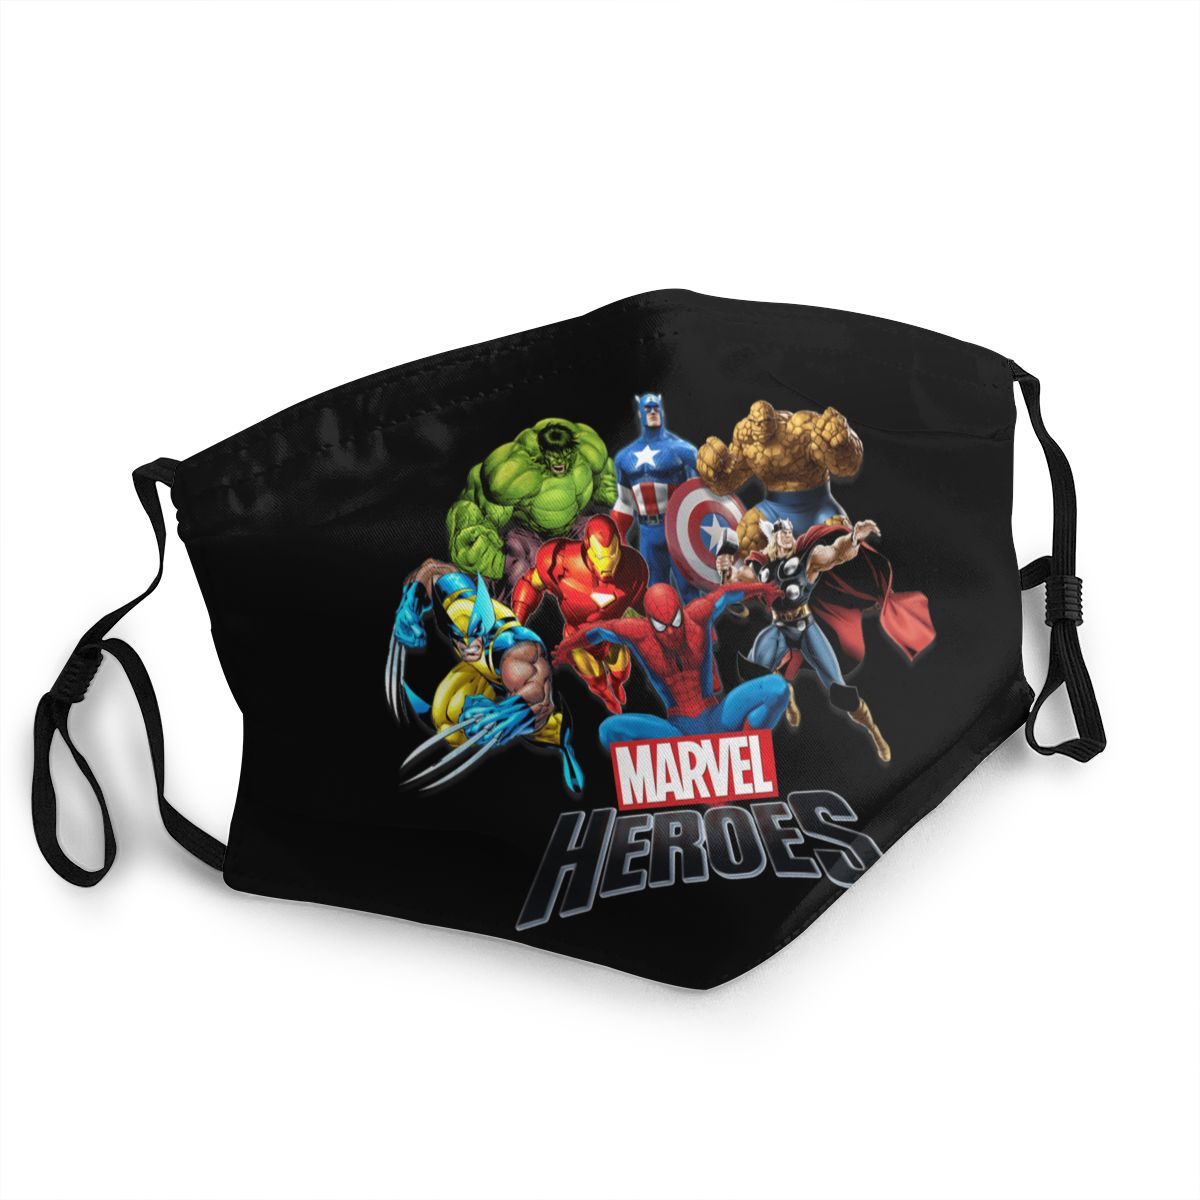 Printer Marvel Pm2.5 Filter Dust Mask Fashion Boys/girls Filter Mouth Foam Mask Marvel Legends Baseball Caps Ladies/mens Mask